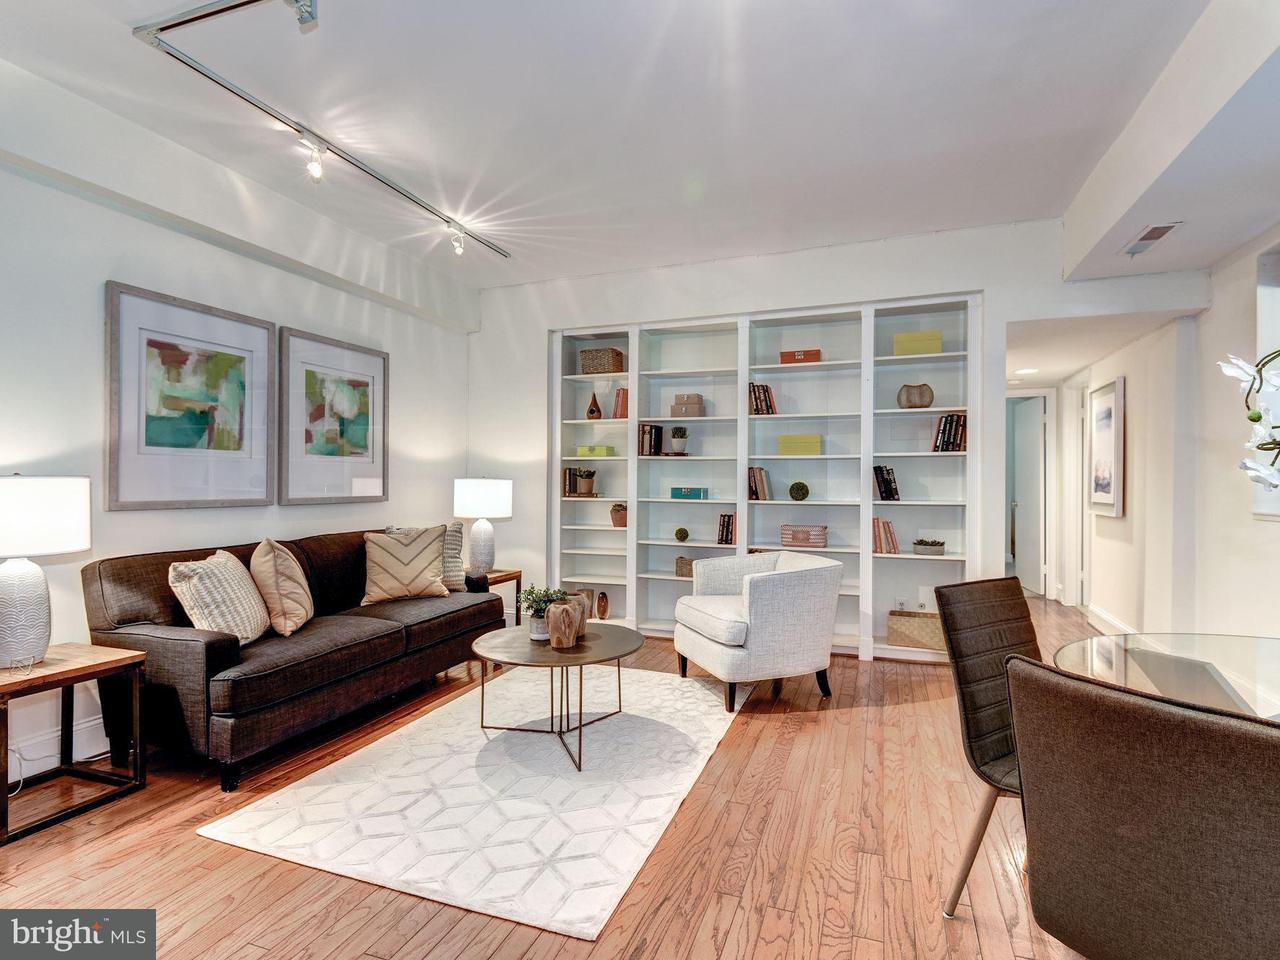 Condominium for Sale at 2127 California St NW #102 Washington, District Of Columbia 20008 United States